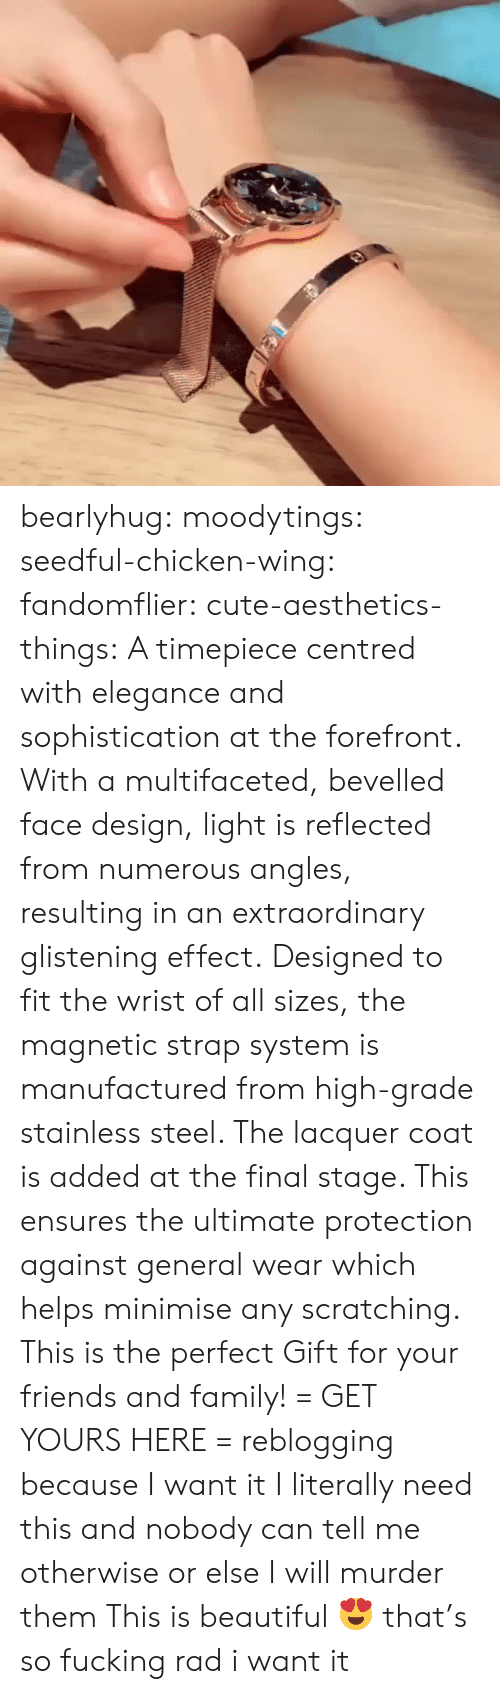 Beautiful, Cute, and Family: bearlyhug: moodytings:   seedful-chicken-wing:  fandomflier:  cute-aesthetics-things:   A timepiece centred with elegance and sophistication at the forefront. With a multifaceted, bevelled face design, light is reflected from numerous angles, resulting in an extraordinary glistening effect. Designed to fit the wrist of all sizes, the magnetic strap system is manufactured from high-grade stainless steel. The lacquer coat is added at the final stage. This ensures the ultimate protection against general wear which helps minimise any scratching. This is the perfect Gift for your friends and family! = GET YOURS HERE =   reblogging because I want it  I literally need this and nobody can tell me otherwise or else I will murder them   This is beautiful 😍   that's so fucking rad i want it